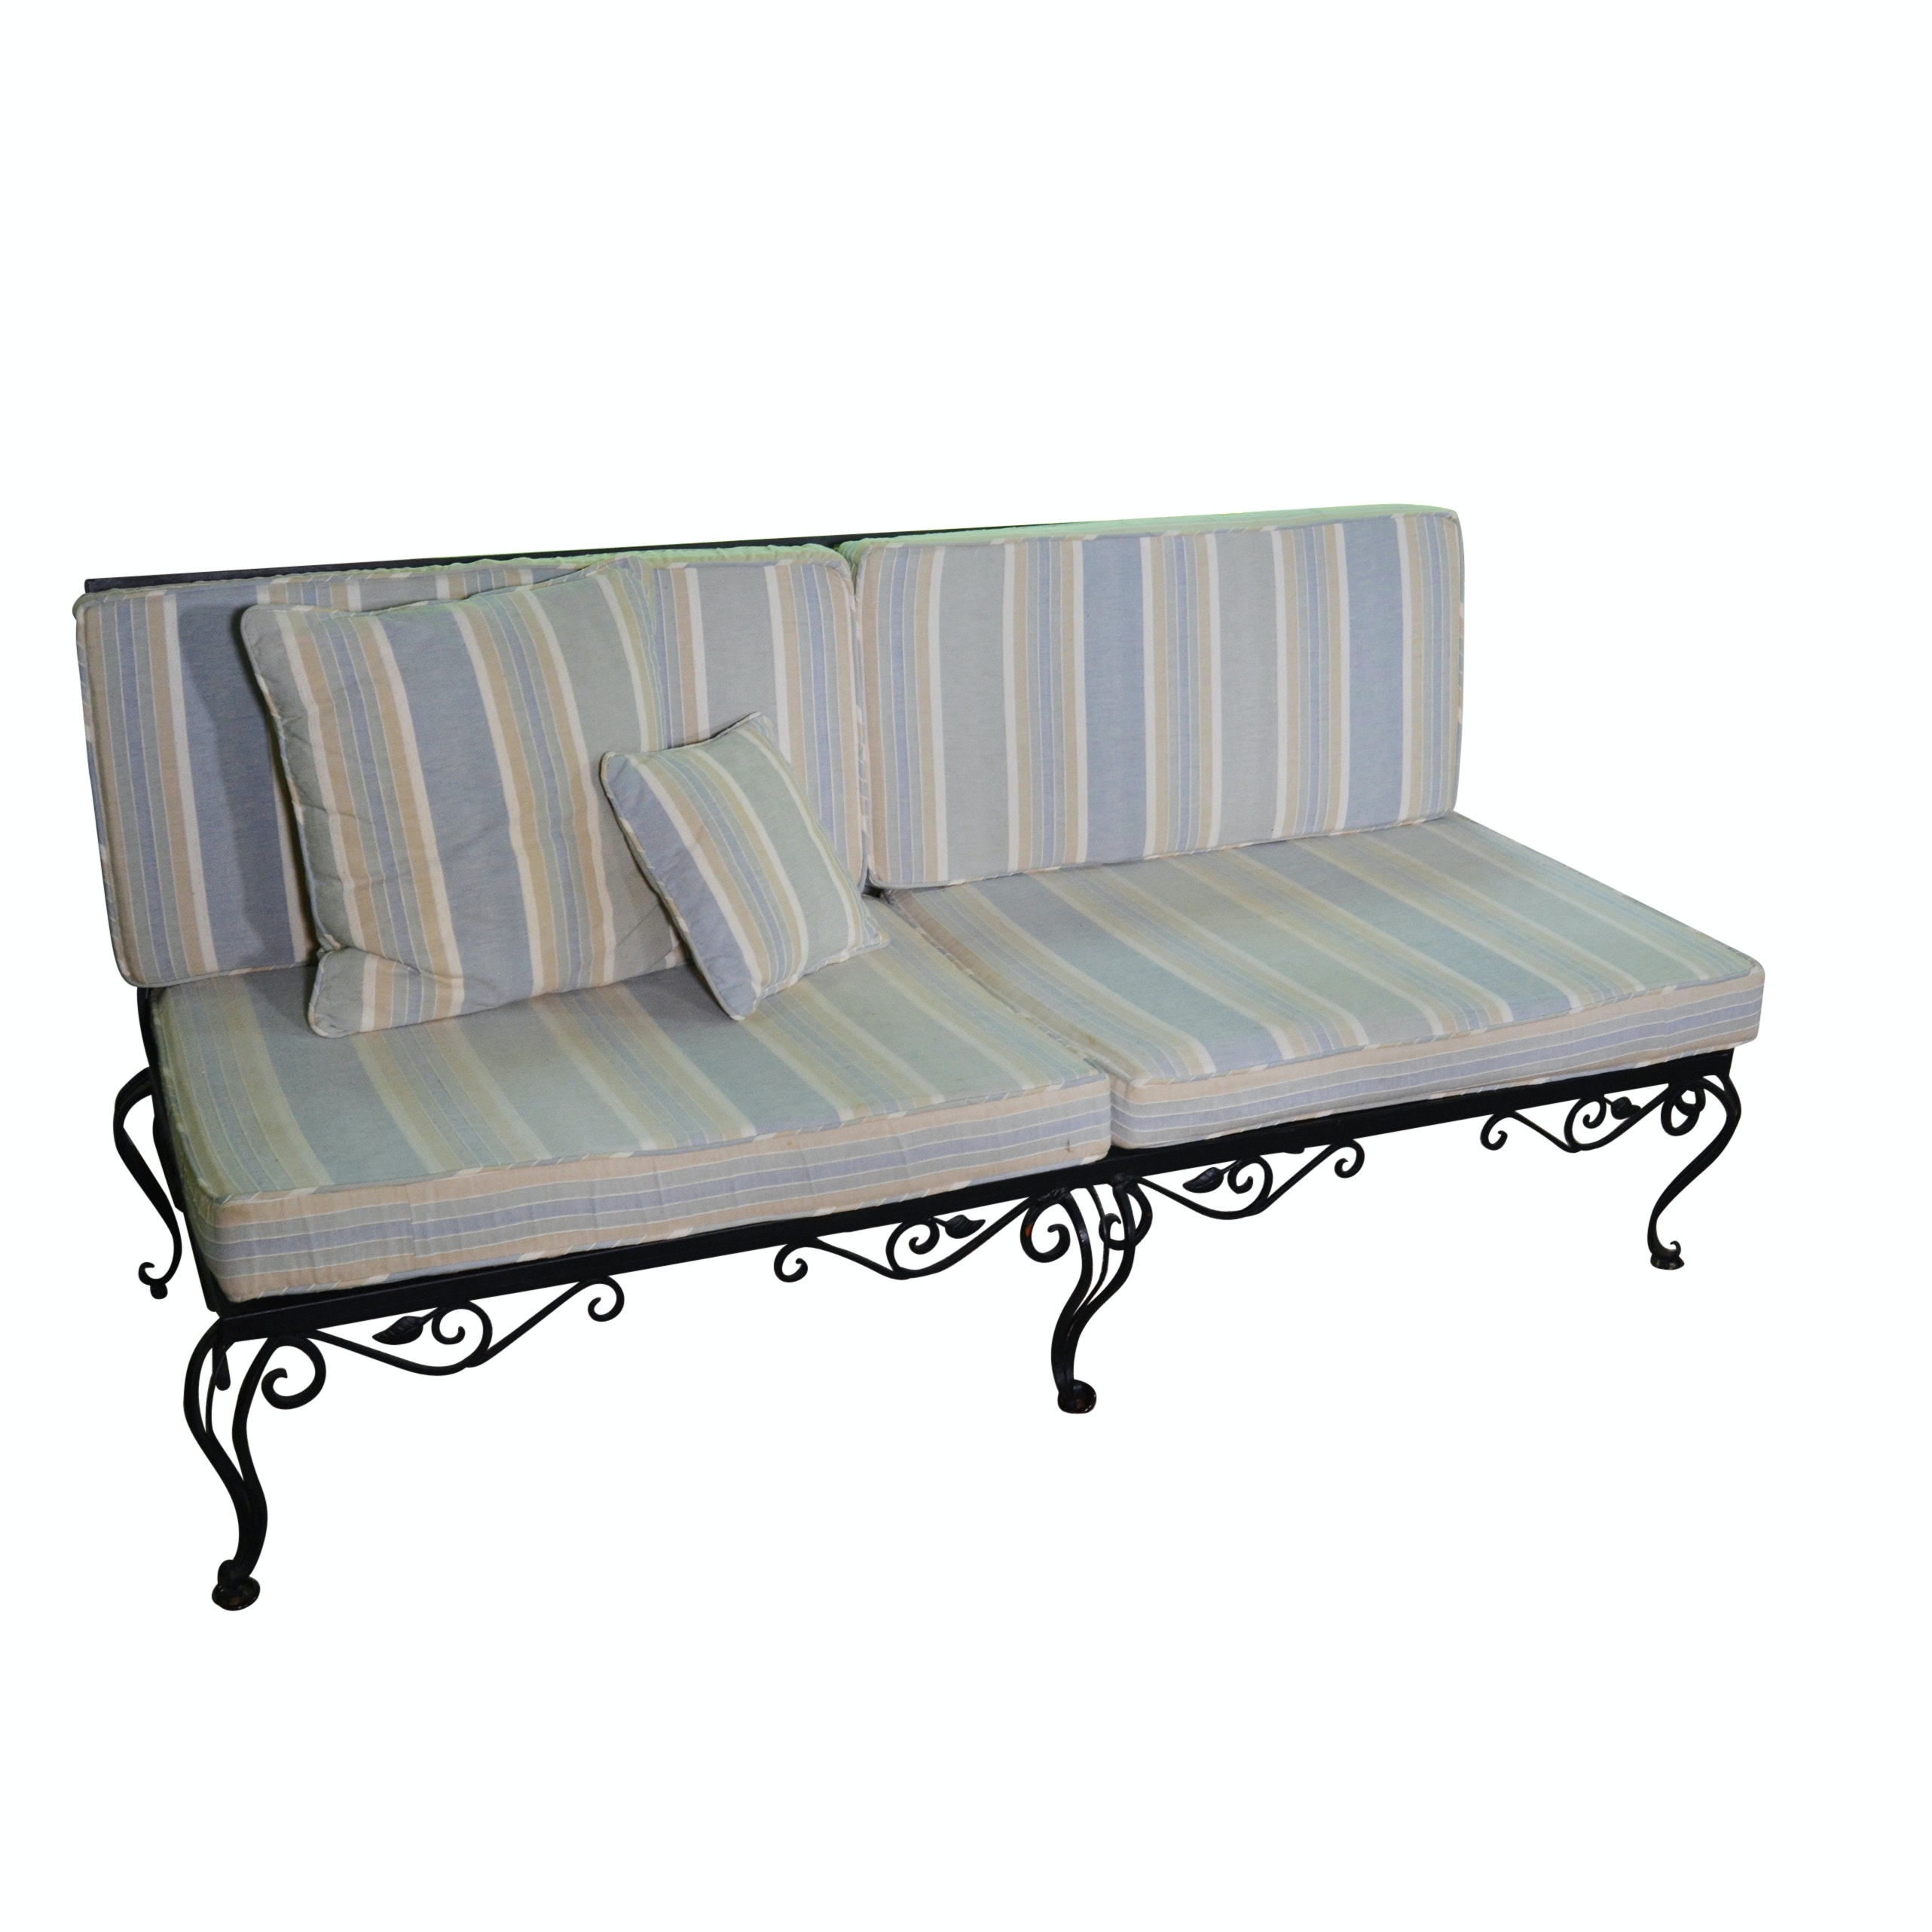 Vintage Wrought Iron Sofa With Striped Cushions ...